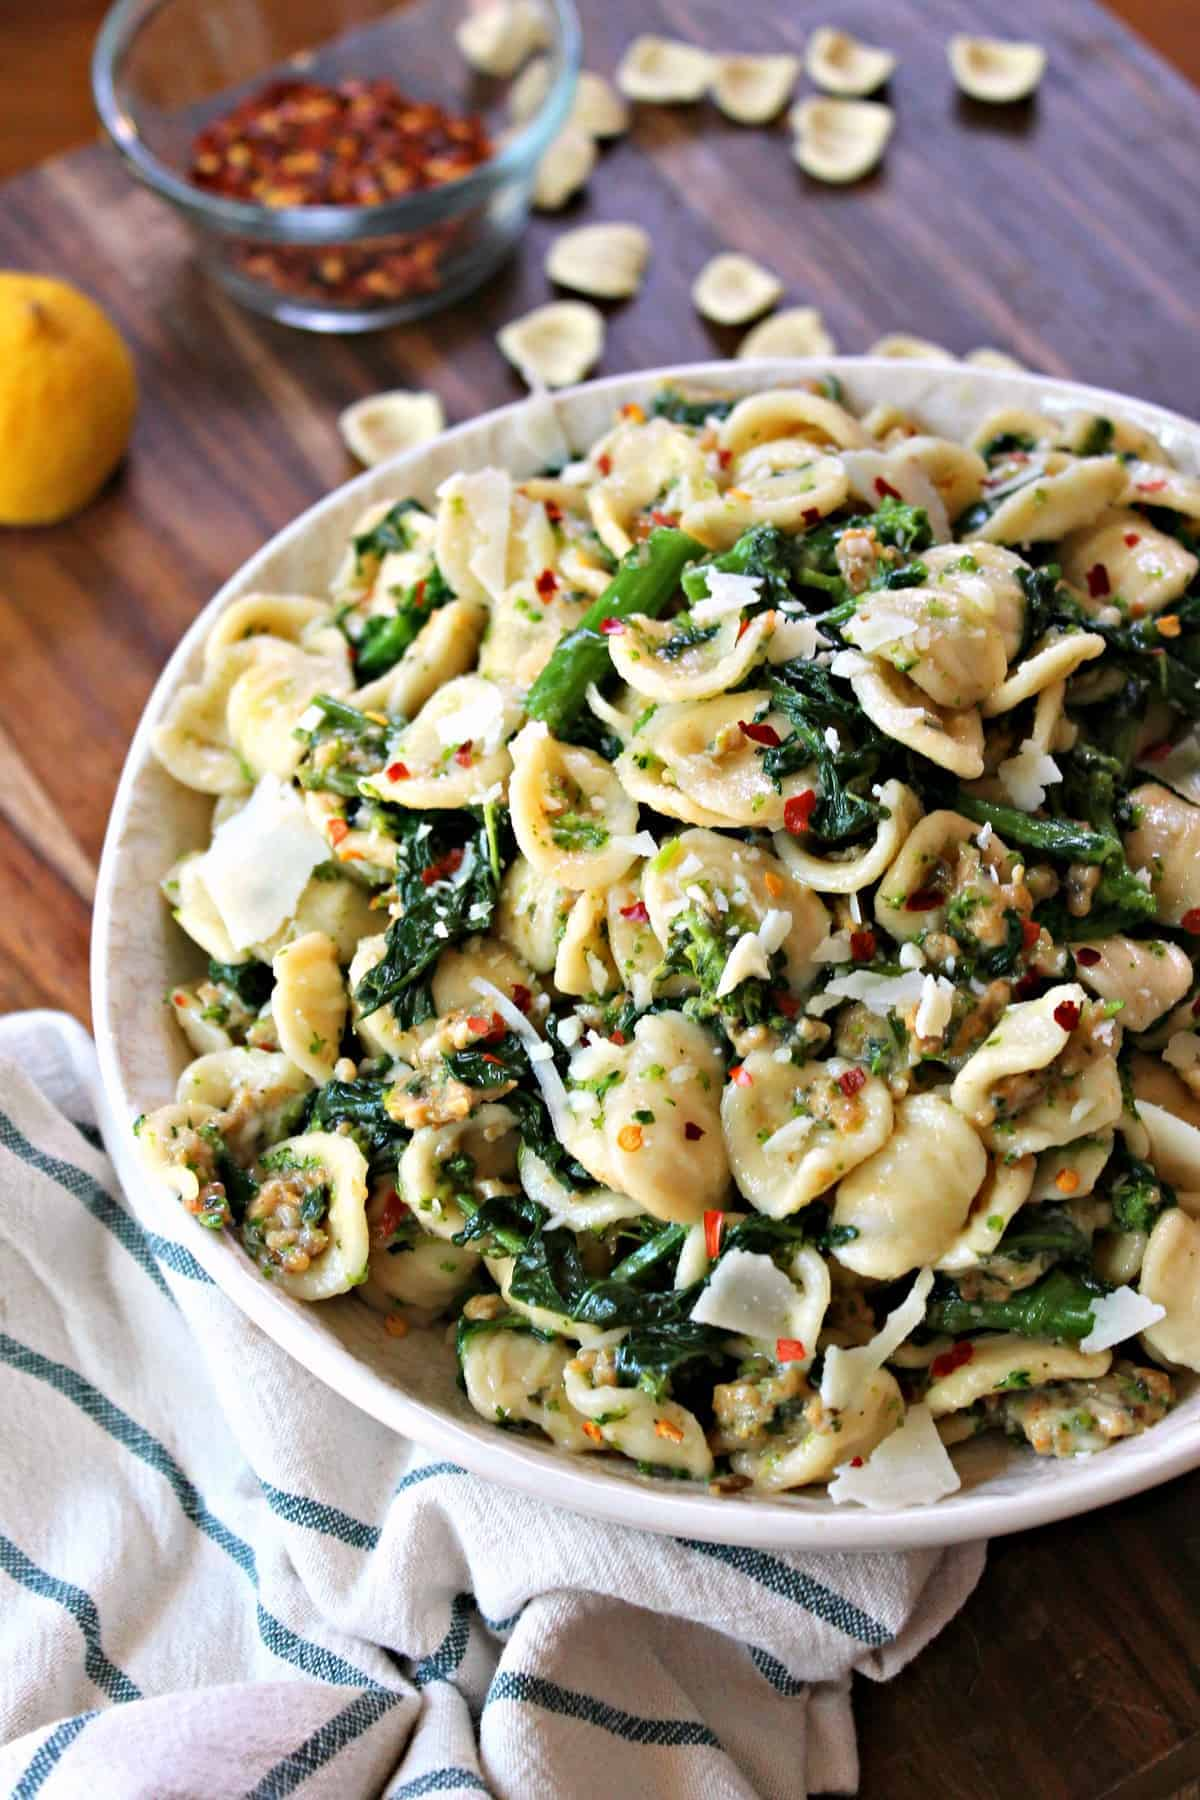 This cheesy Orecchiette Pasta has hearty sausage, sauteed broccoli rabe, and is dressed with a flavorful dressing